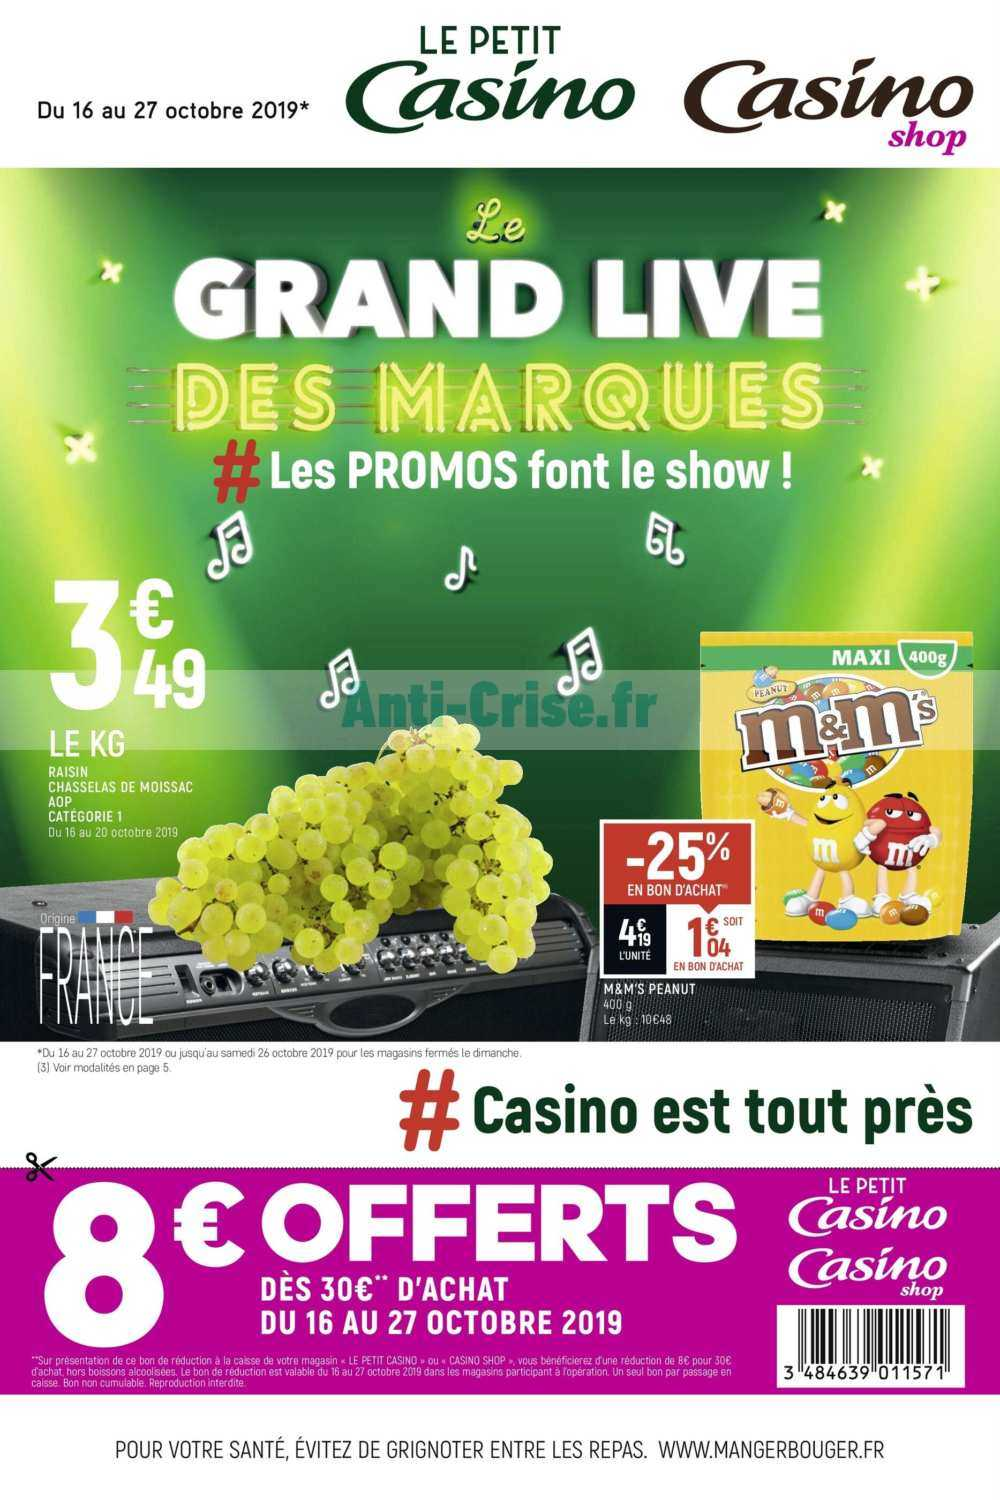 https://media.anti-crise.fr/2019/10/octobre2019petit-casino1610201927102019S0C0grand-Live-1-200x300.jpg